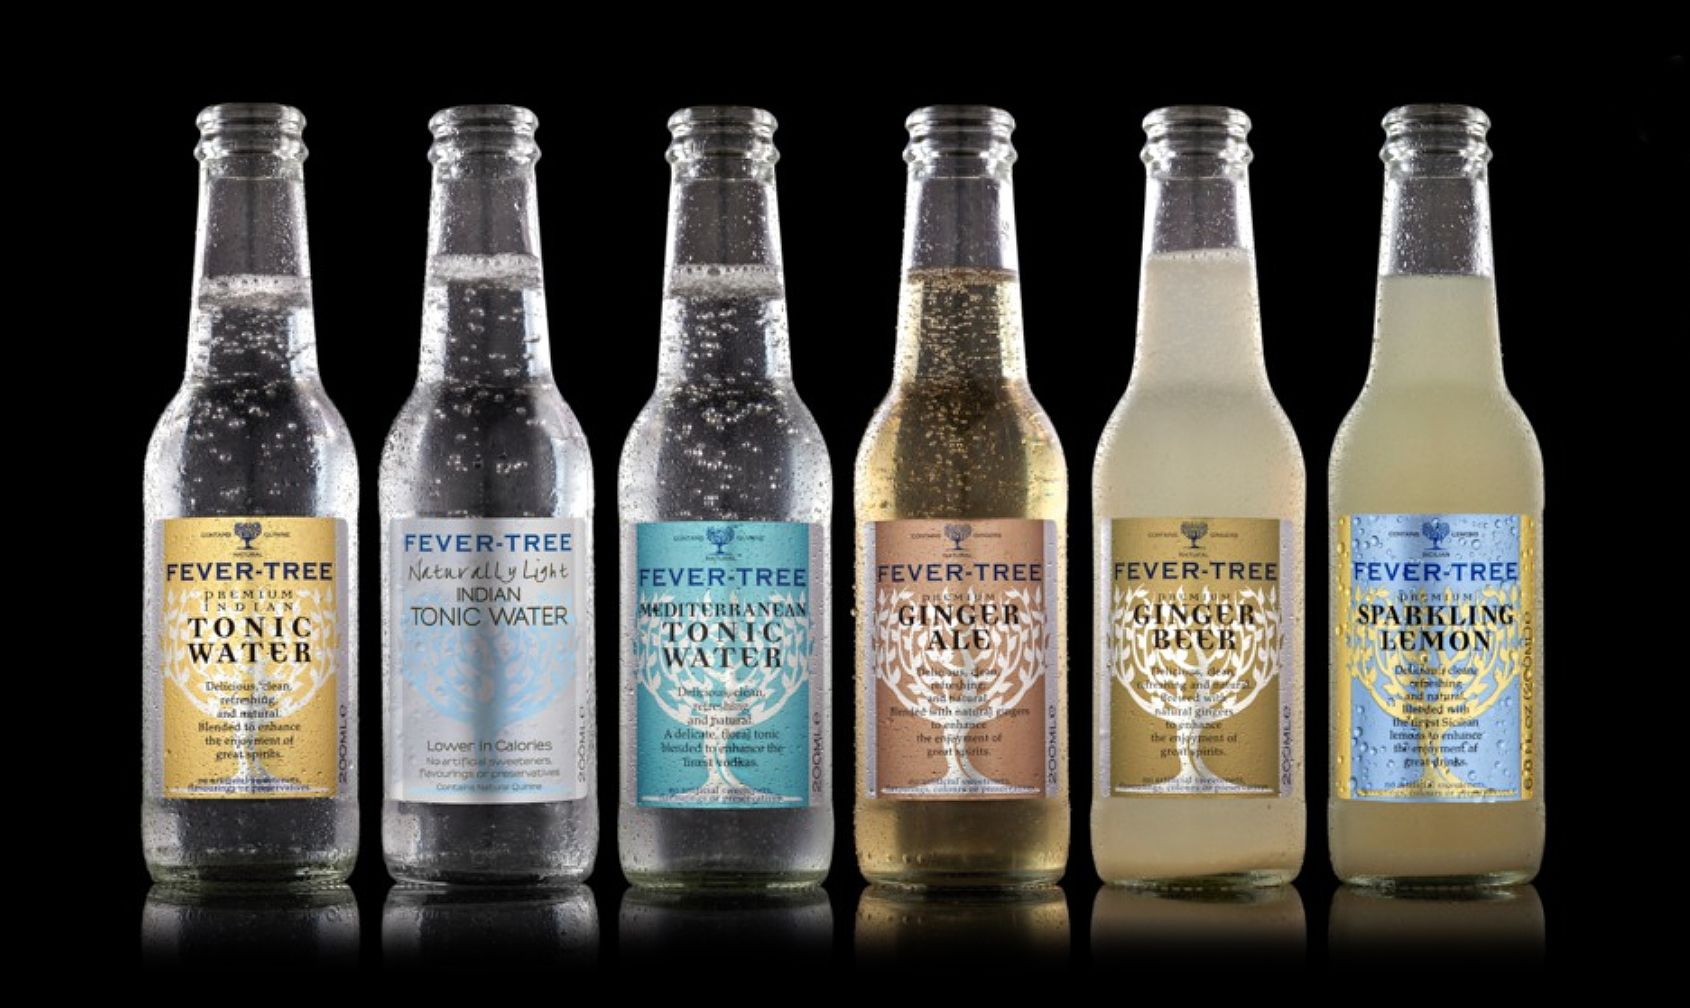 FeverTree Growth up 59 in U.S. Tonic water, Best tonic